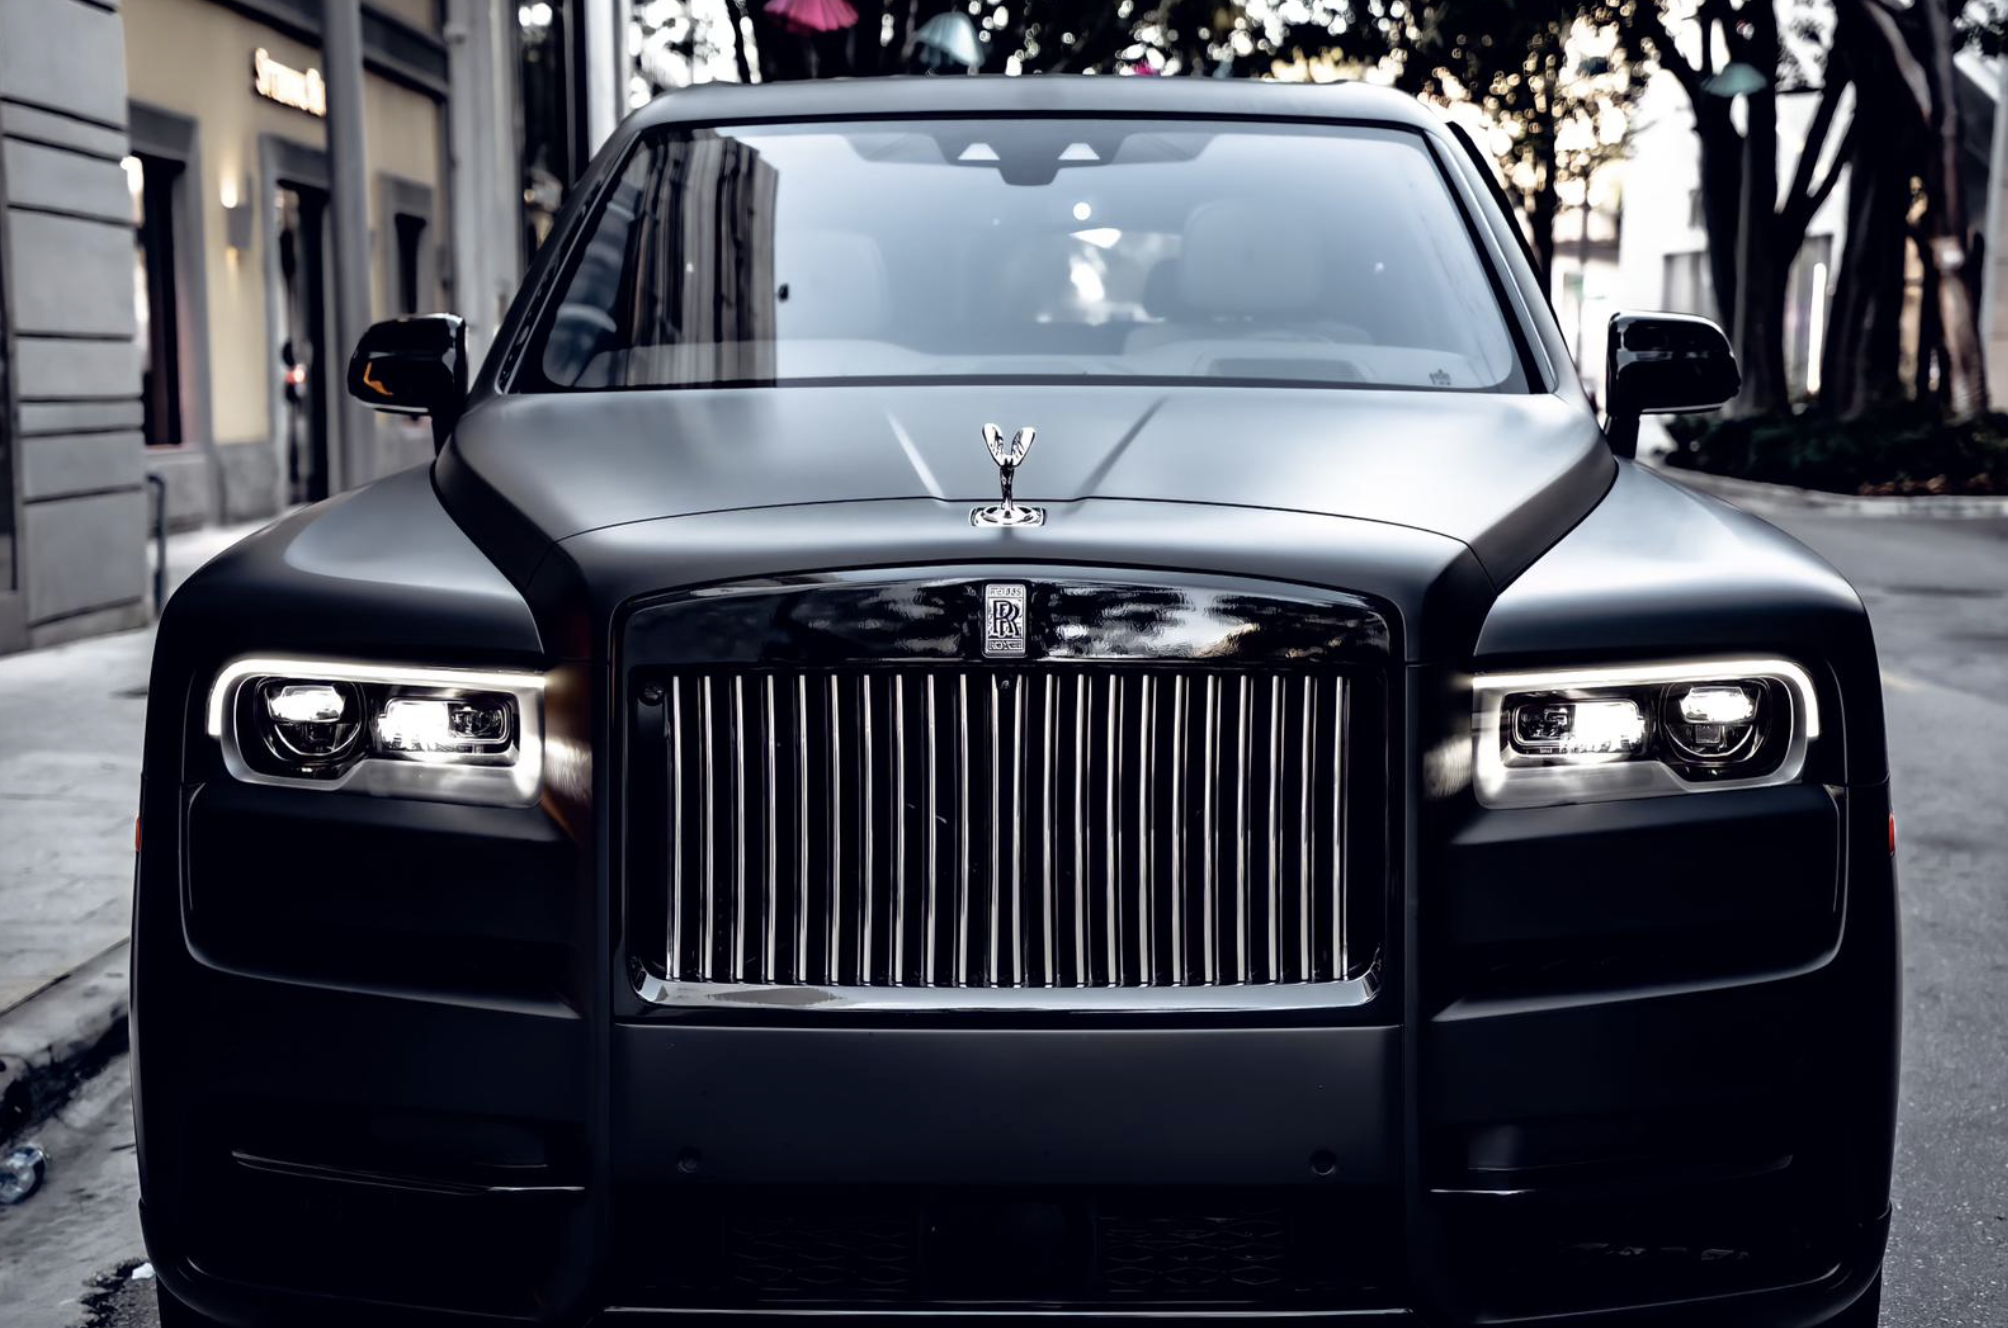 Image #6 of our  2021 ROLLS ROYCE CULLINAN - MATT BLACK    In Miami Fort Lauderdale Palm Beach South Florida